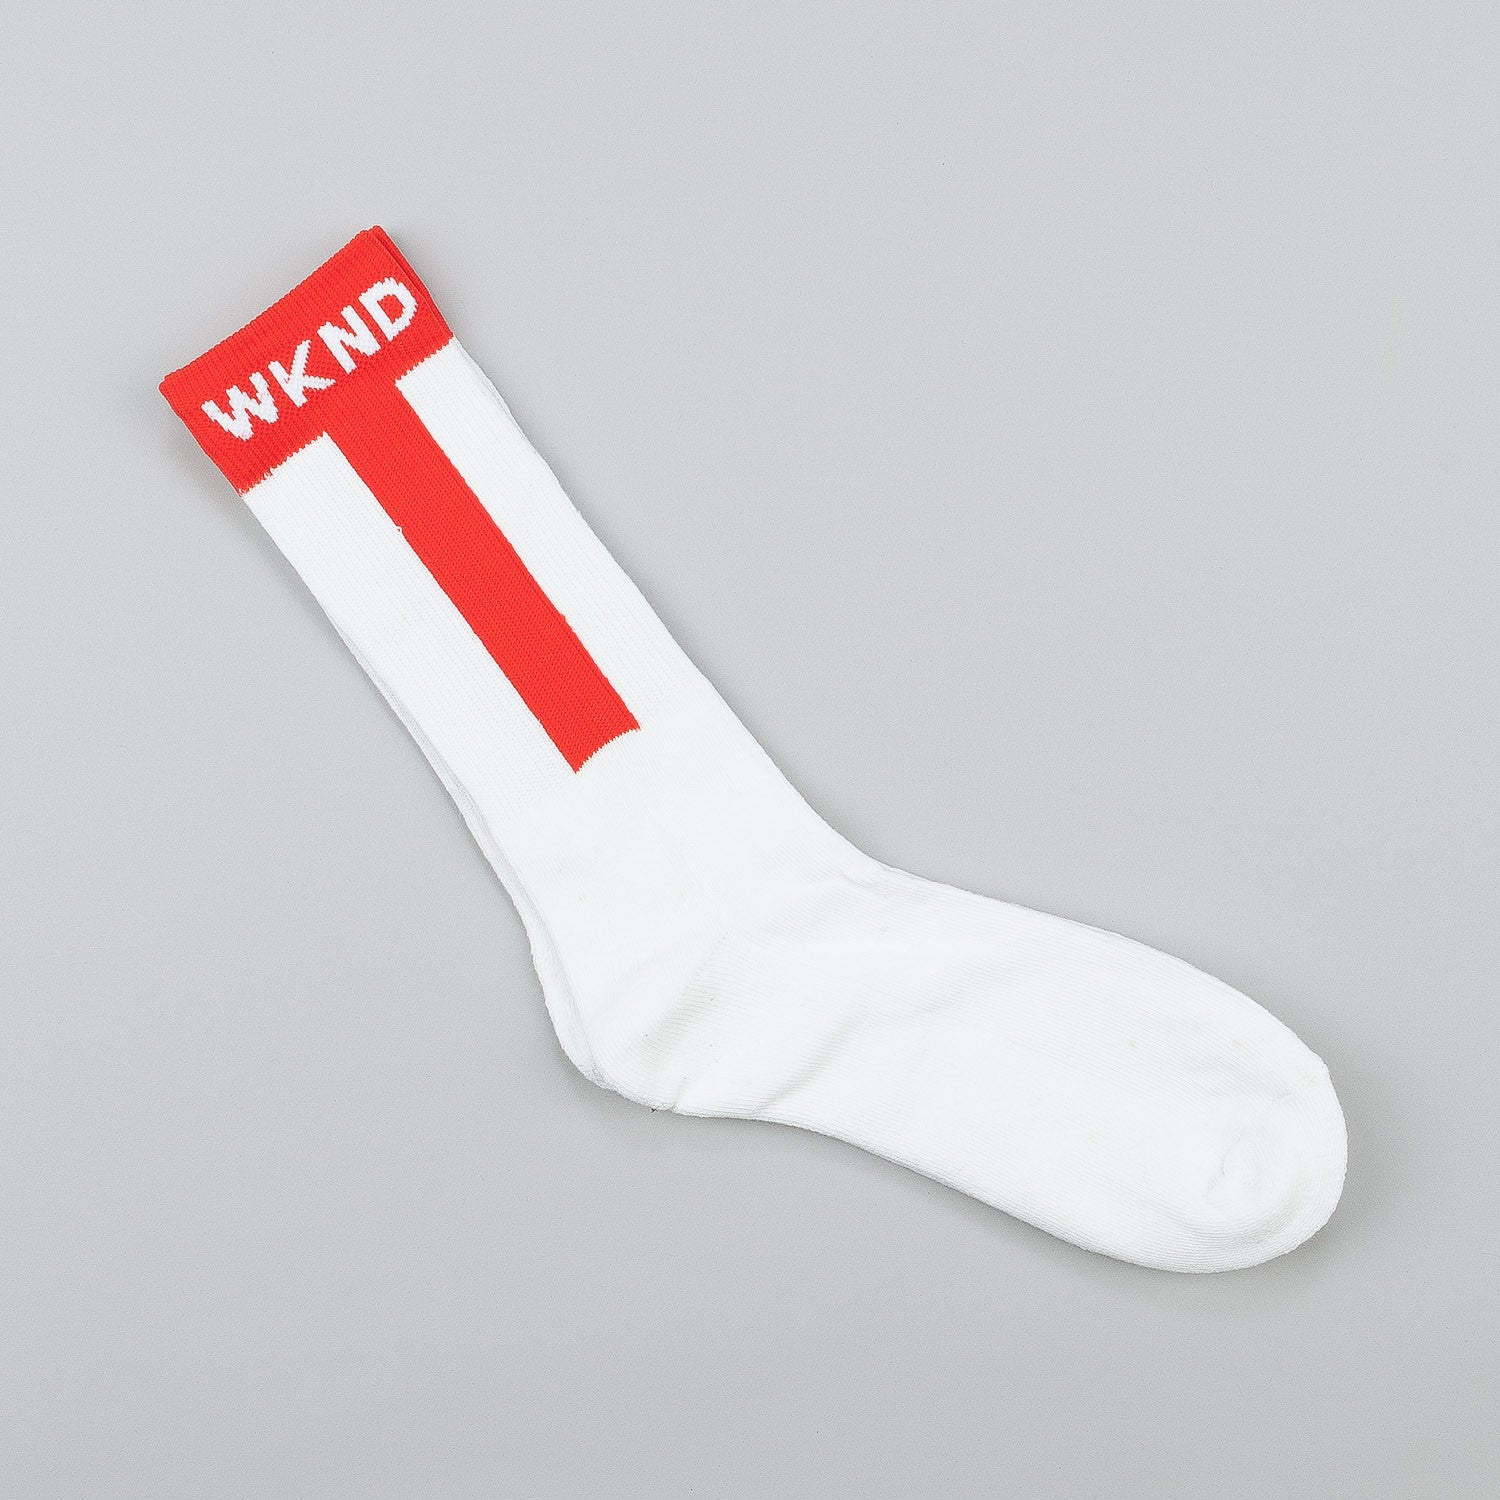 WKND Baseball Socks - Red